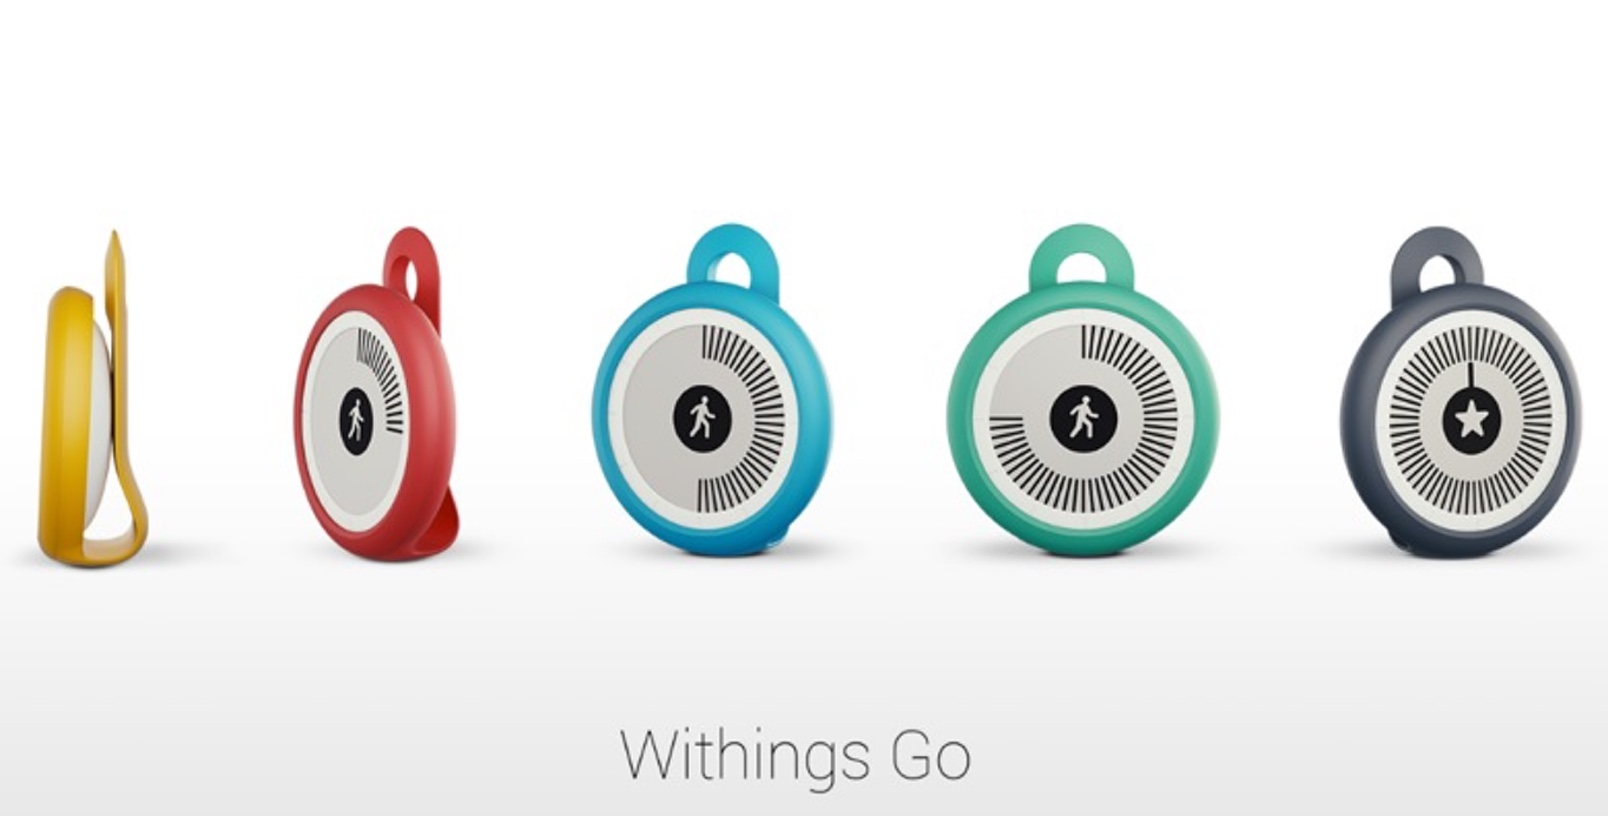 Withings' new Go fitness tracker does more than count your ...